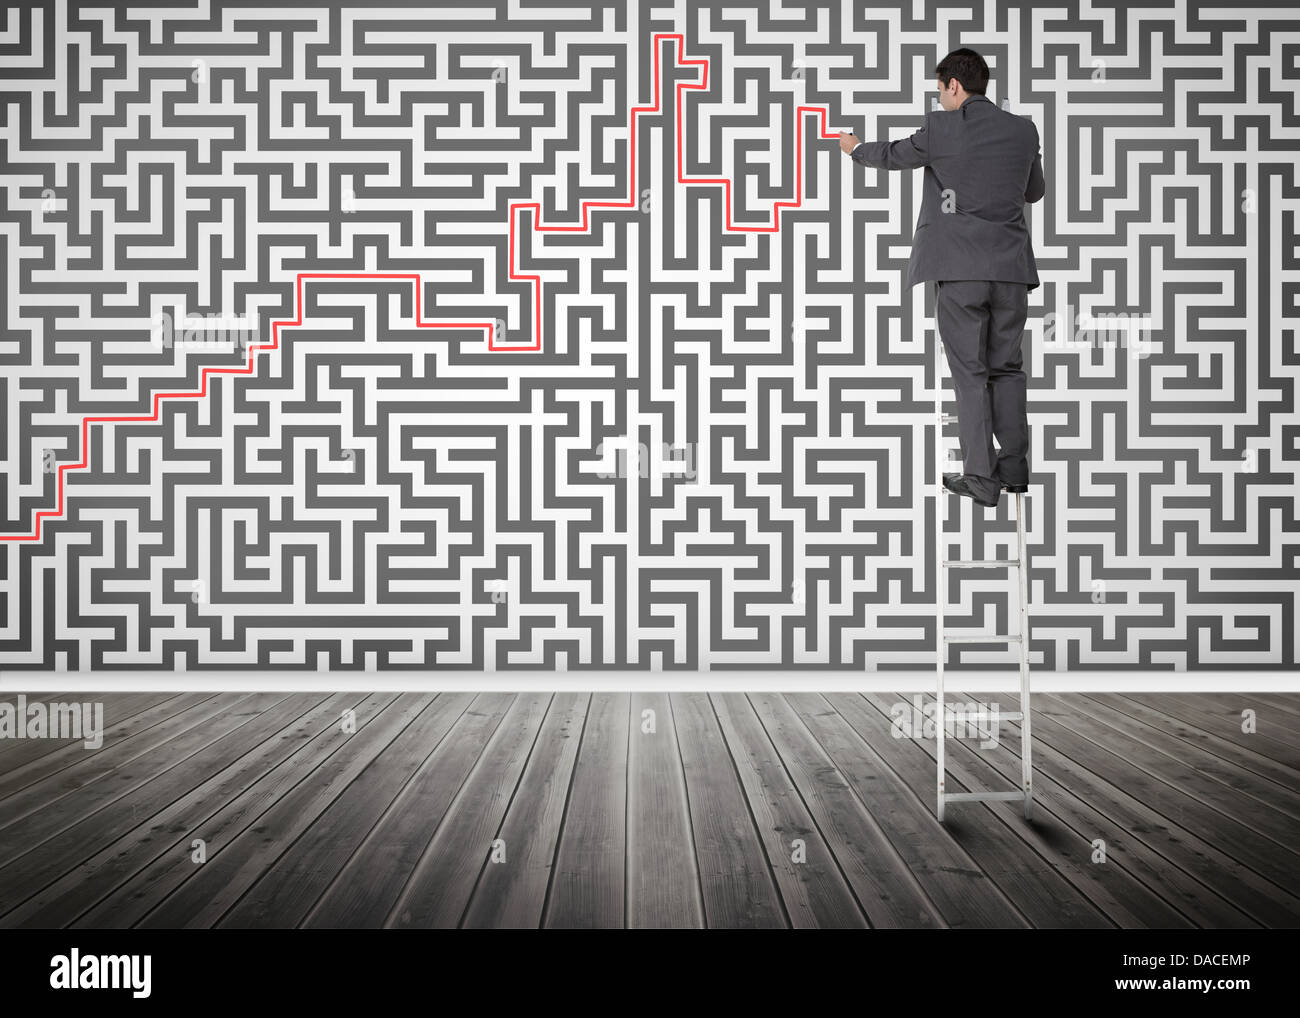 Businessman standing on a ladder solving maze puzzle - Stock Image